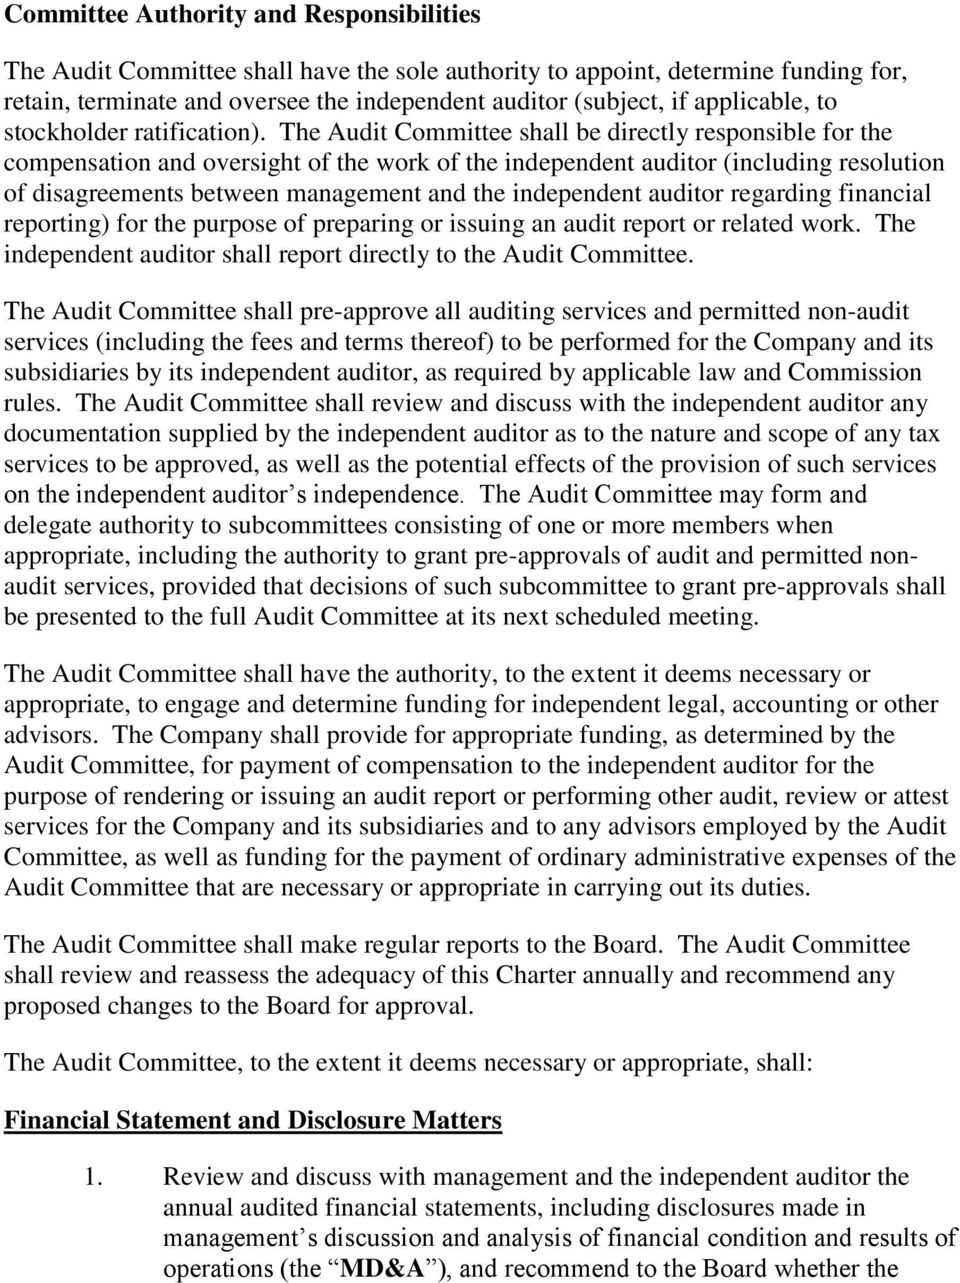 The Audit Committee shall be directly responsible for the compensation and oversight of the work of the independent auditor (including resolution of disagreements between management and the